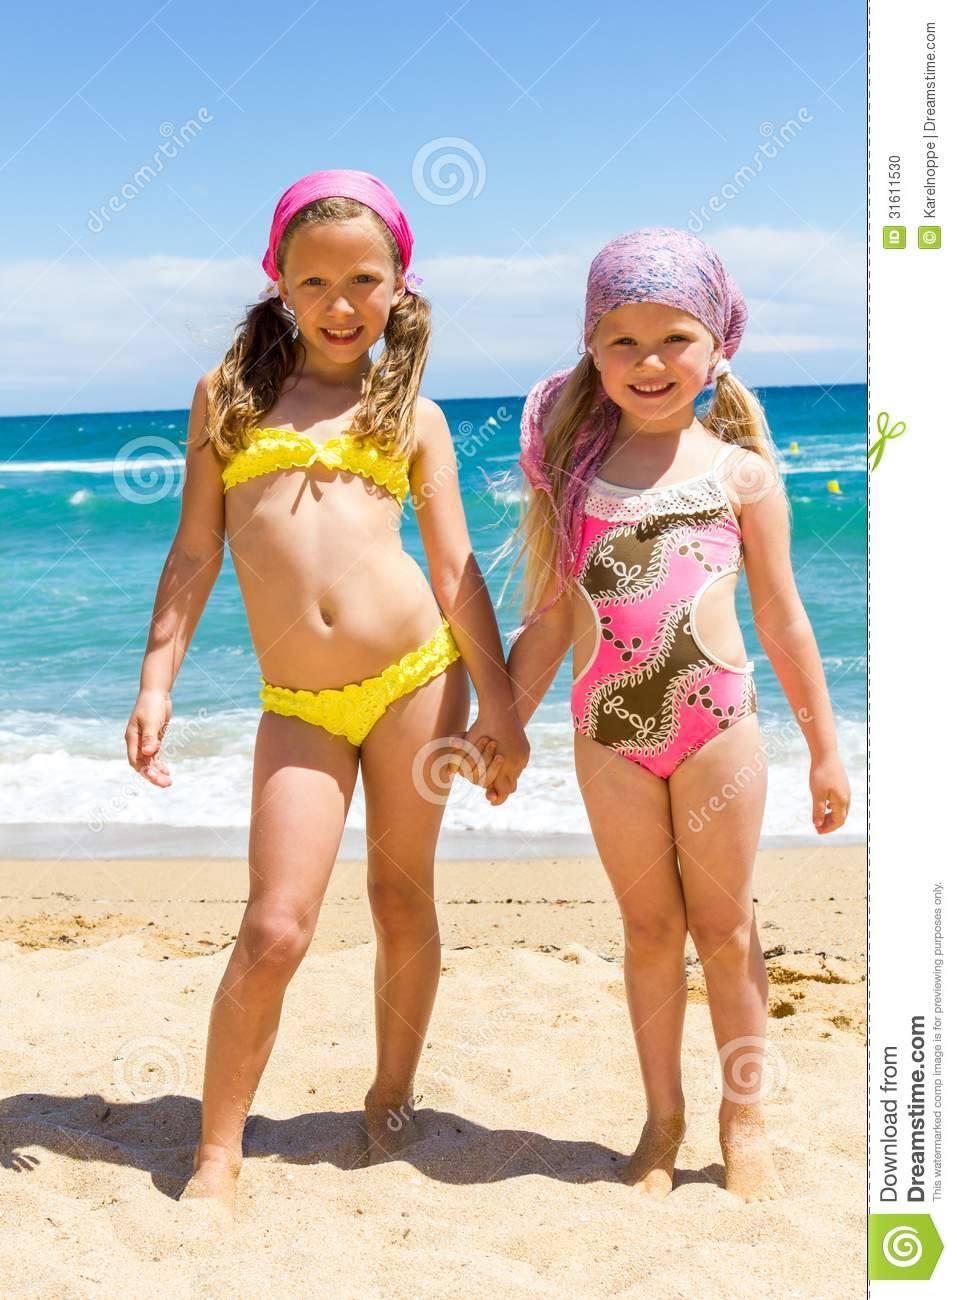 edaa4ae234 Two Girls In Swimwear On Beach. Stock Photo - Image of expression ...